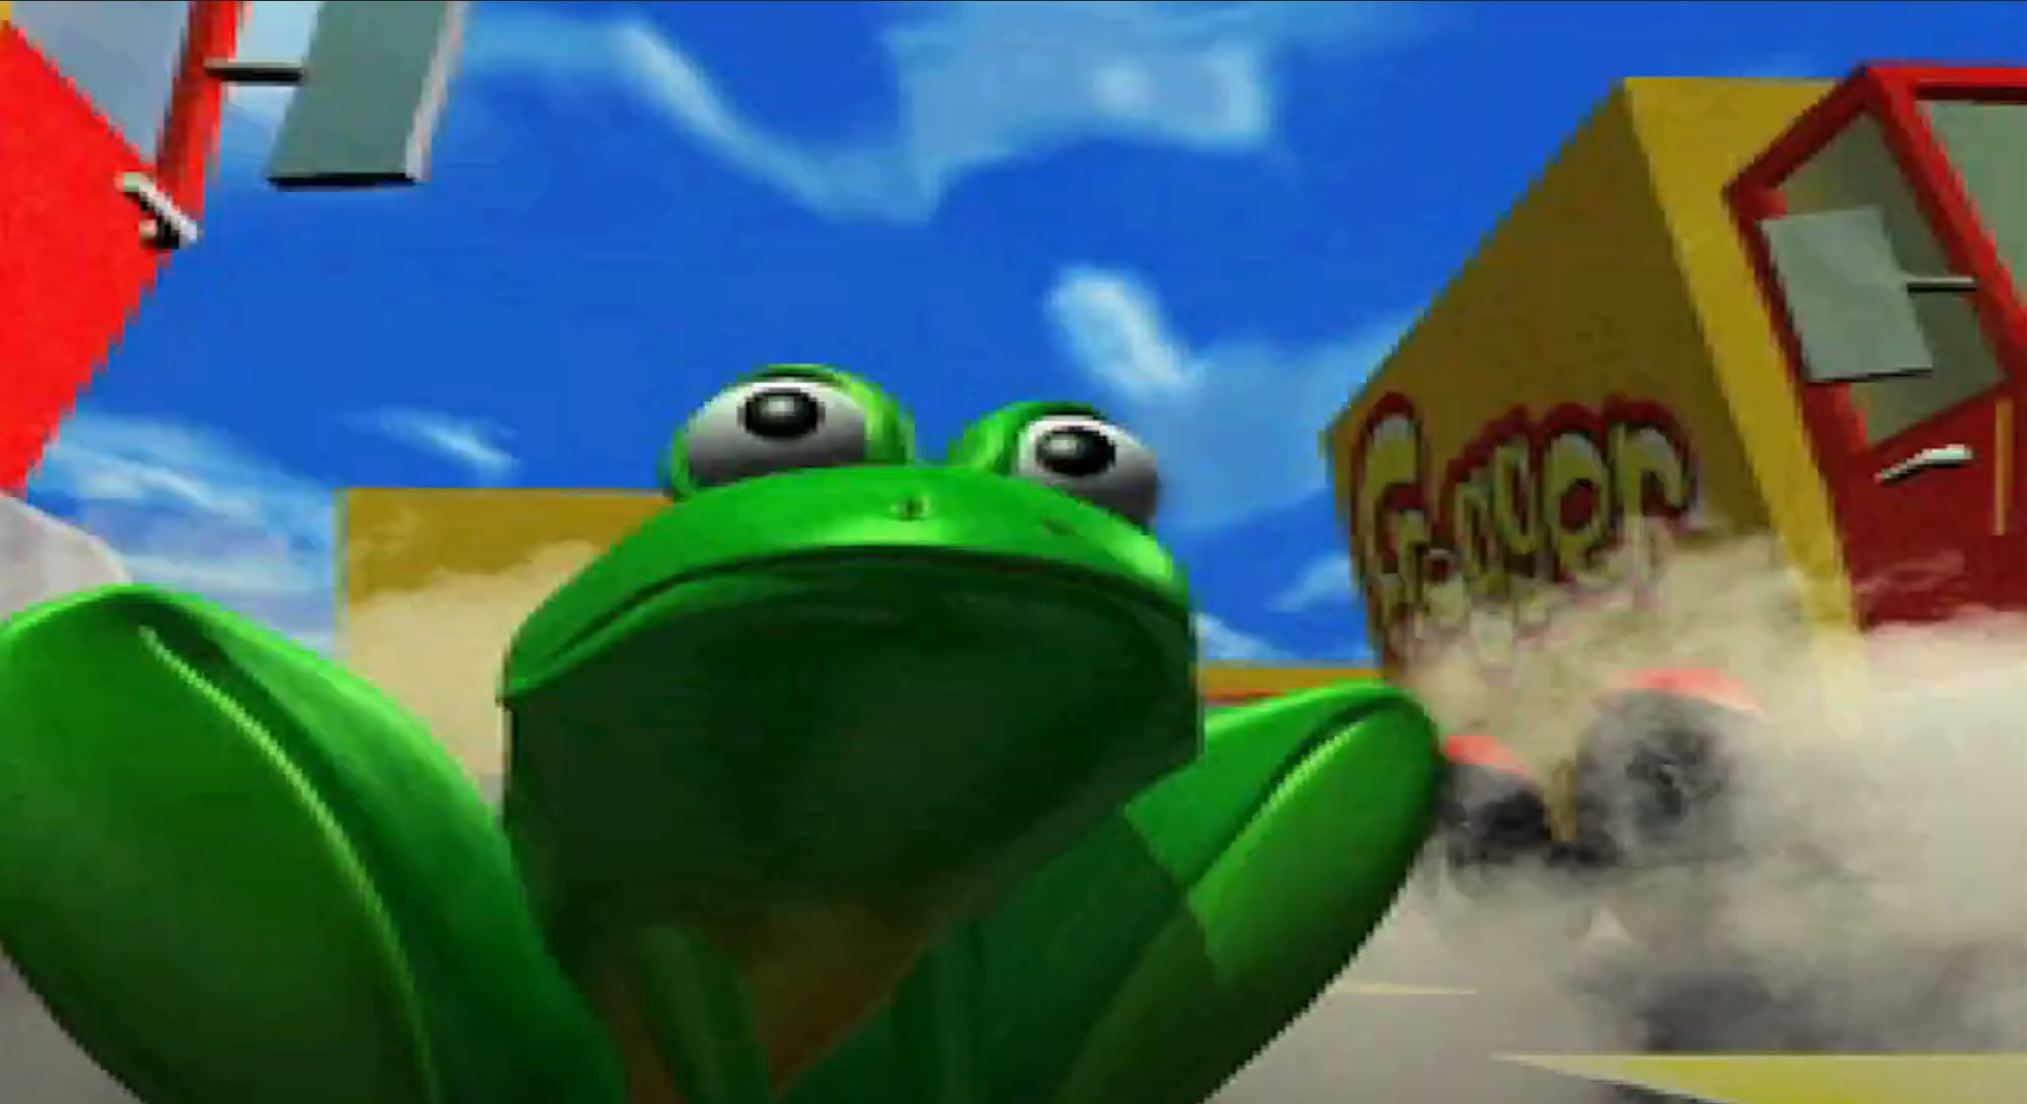 Konami is making a Frogger game show for people really good at crossing busy streets